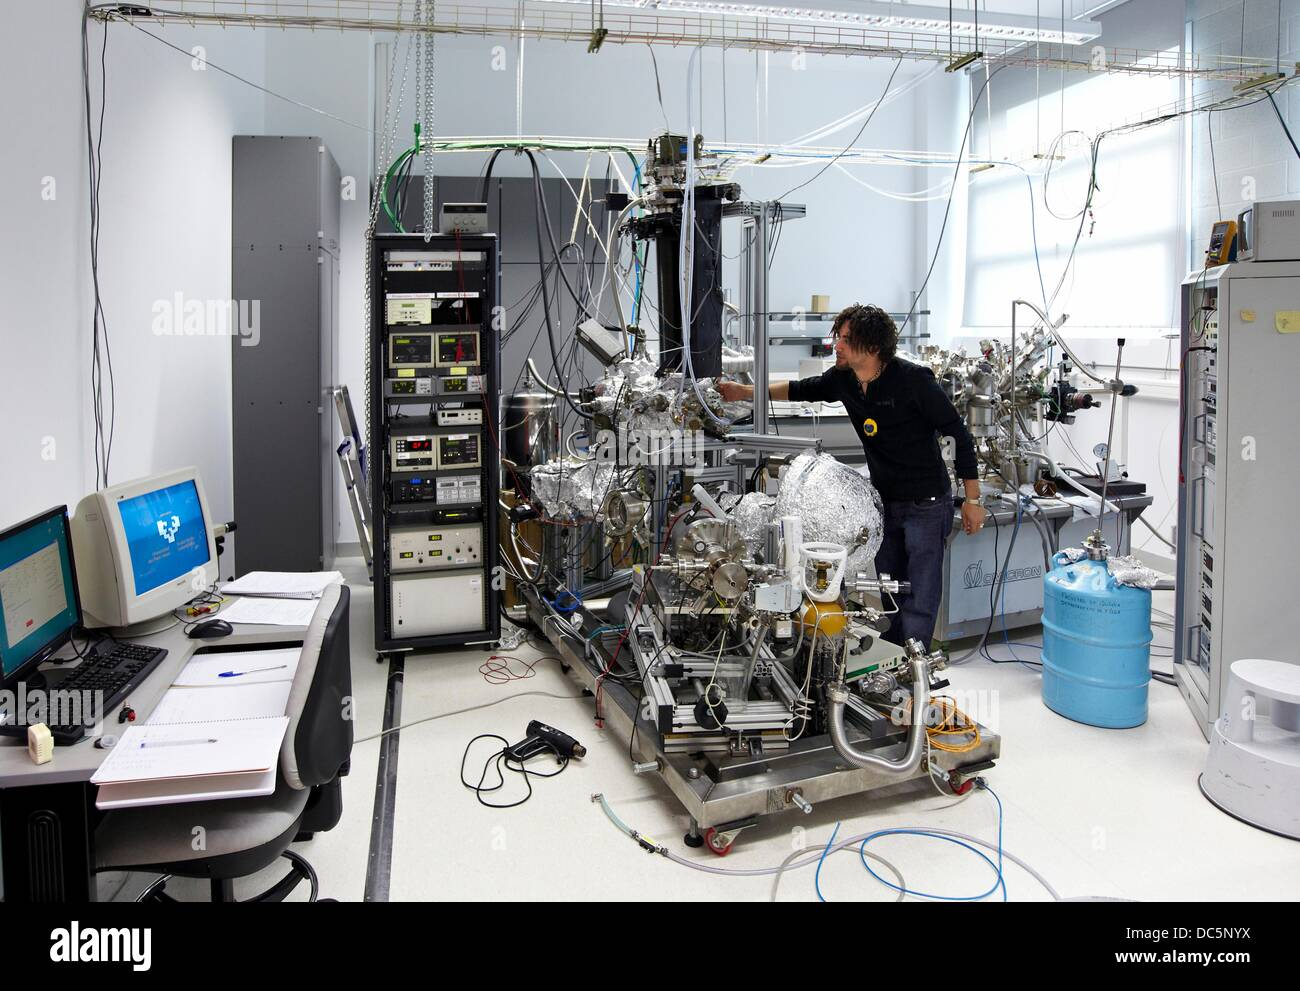 UHV (ultra-high vacuum) chamber, Nanophysics laboratory, Materials Physics Center is a joint center of the Spanish - Stock Image